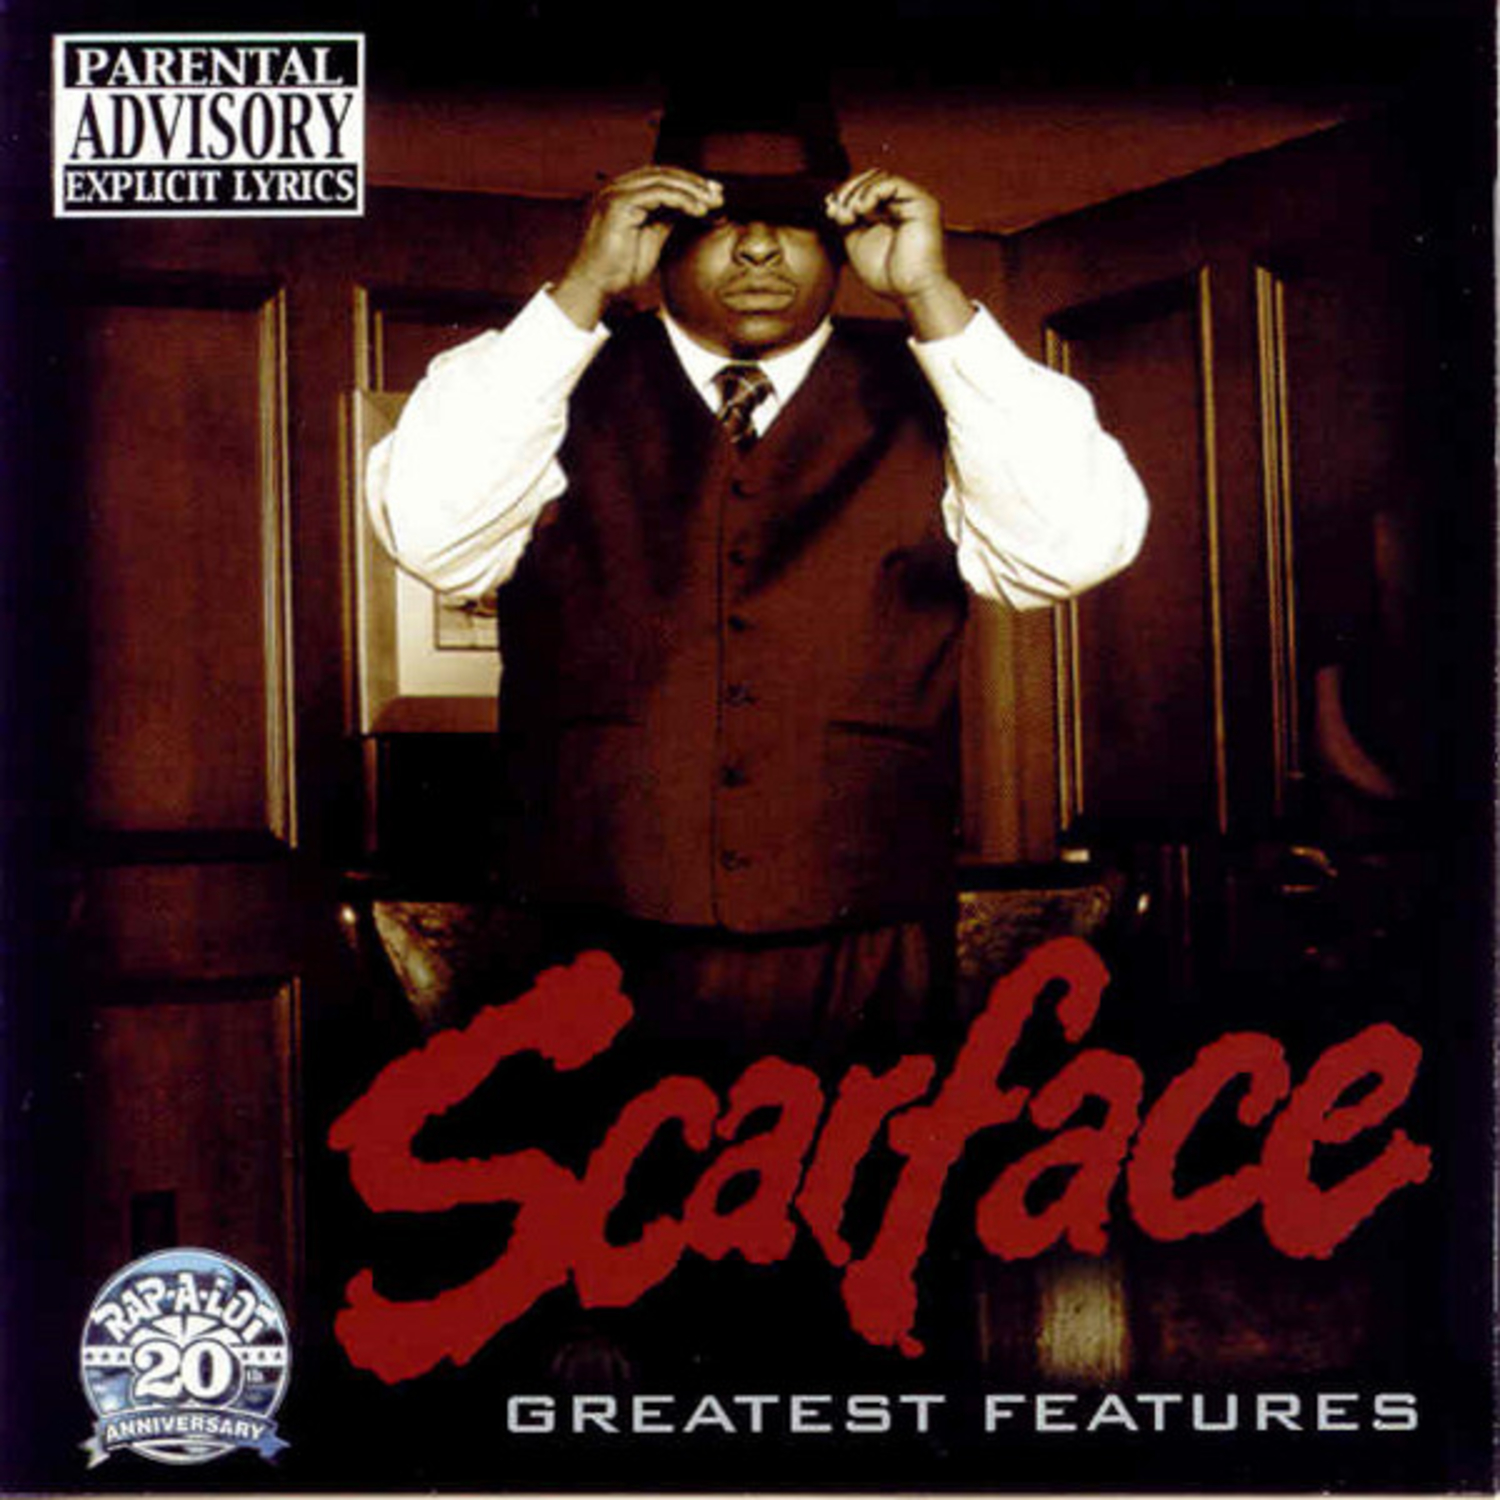 scarface greatest hits album download zip